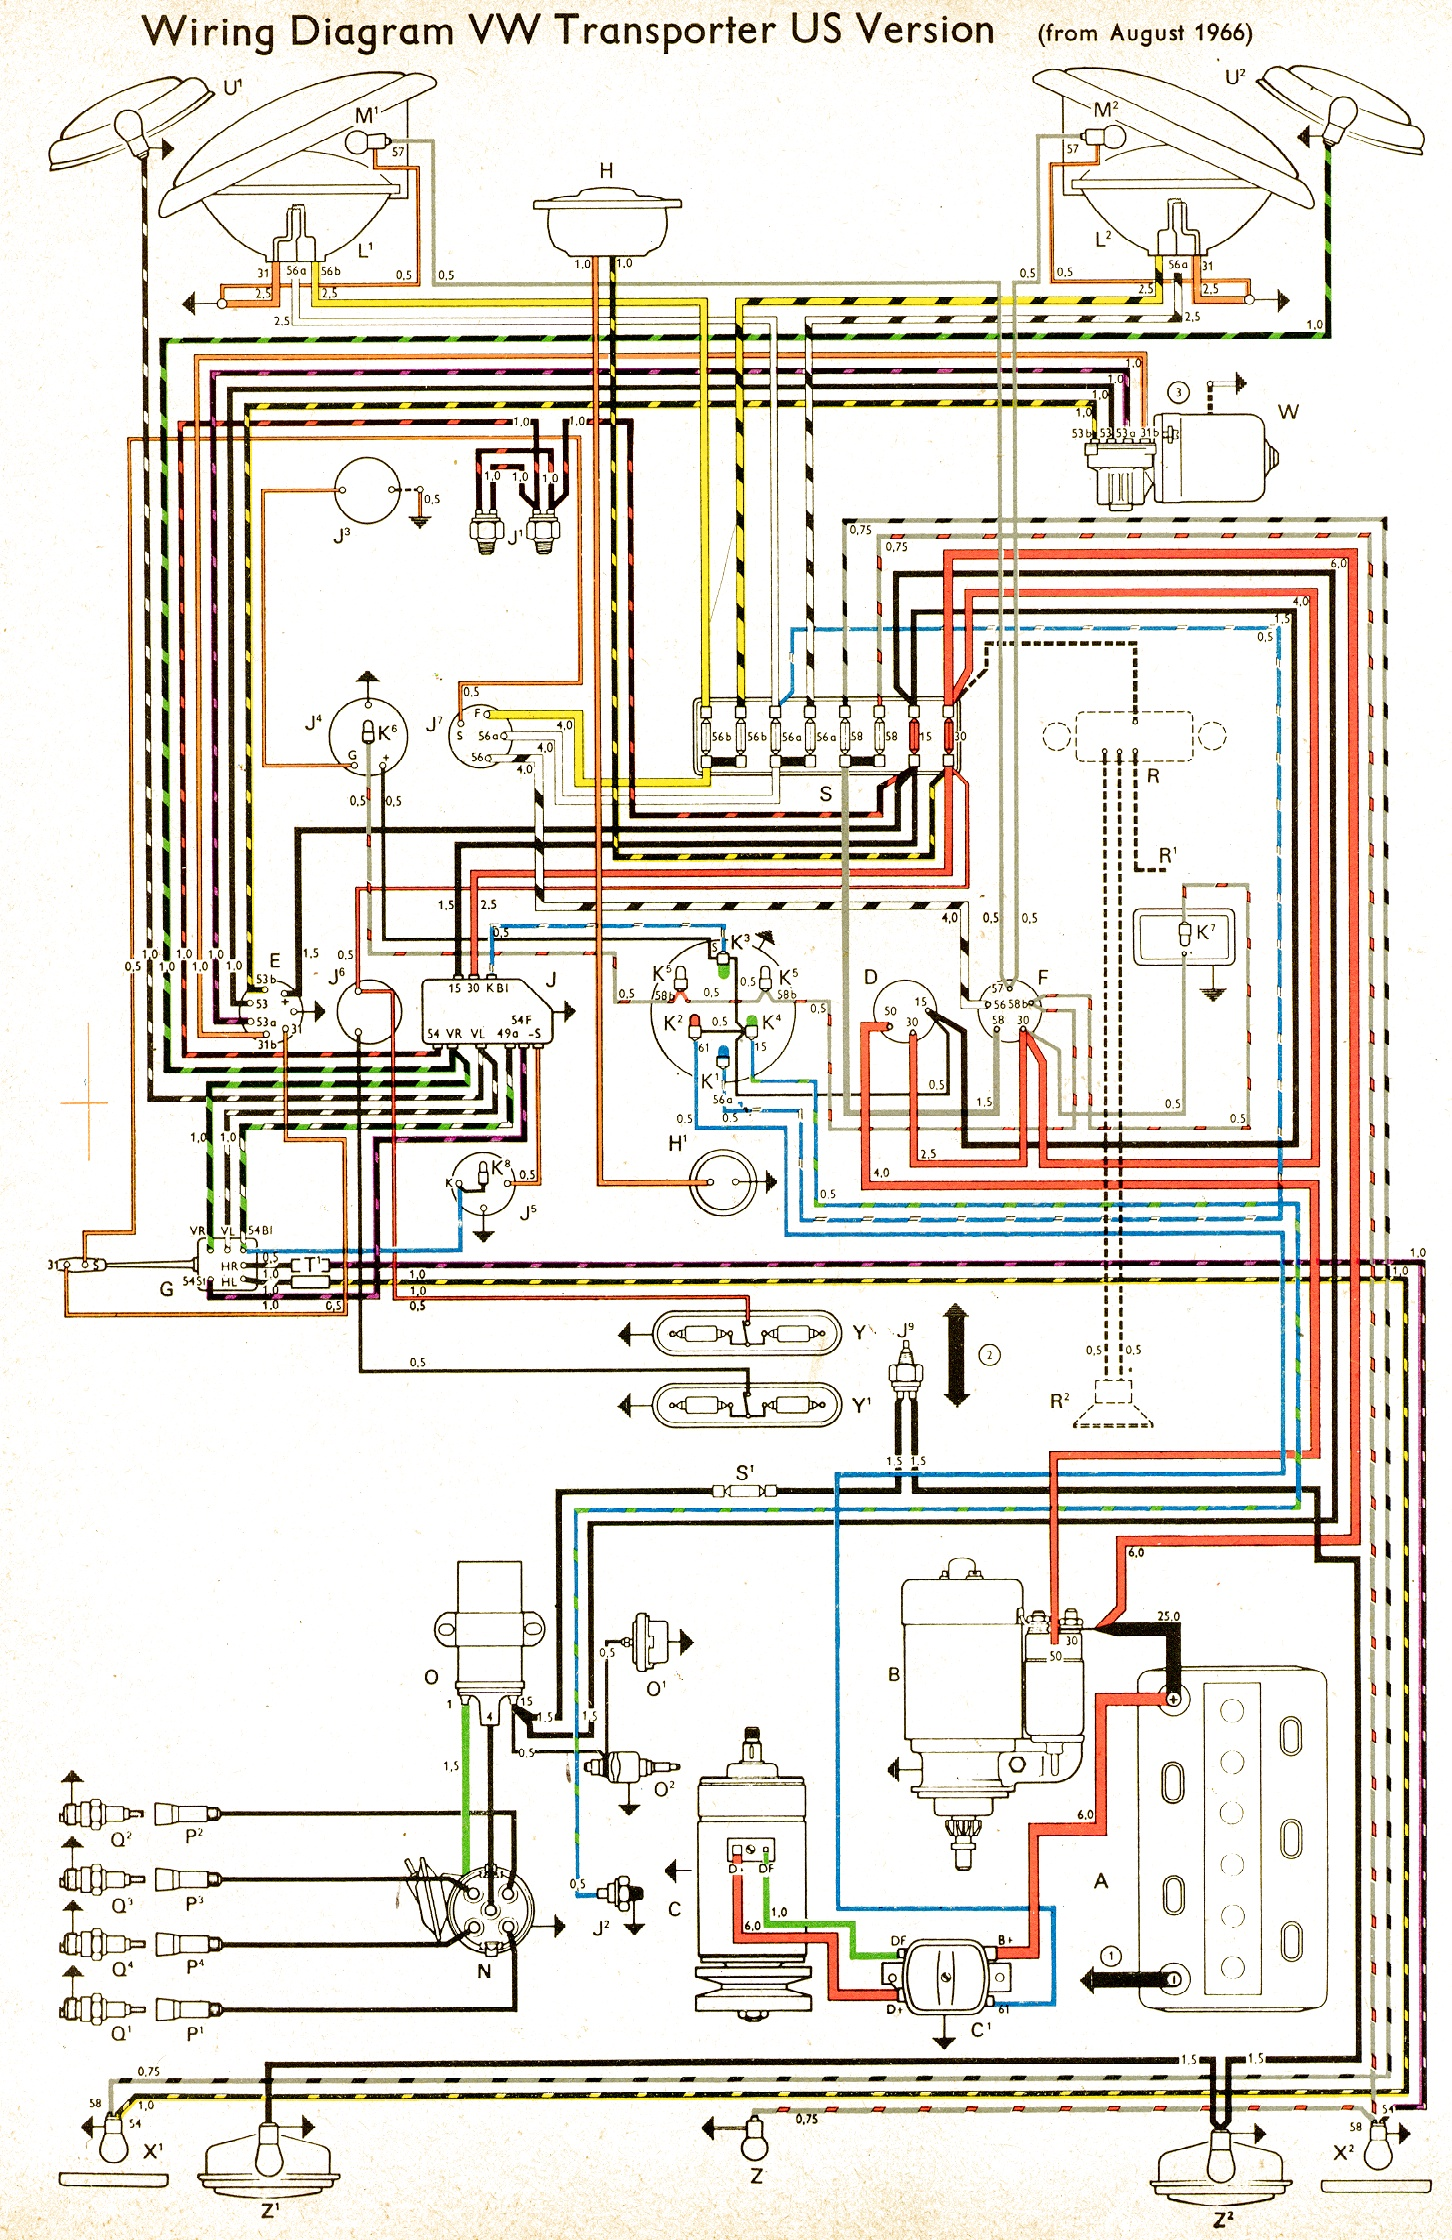 bus 66 usa vw wiring diagrams vw t4 fuse box wiring diagram at crackthecode.co